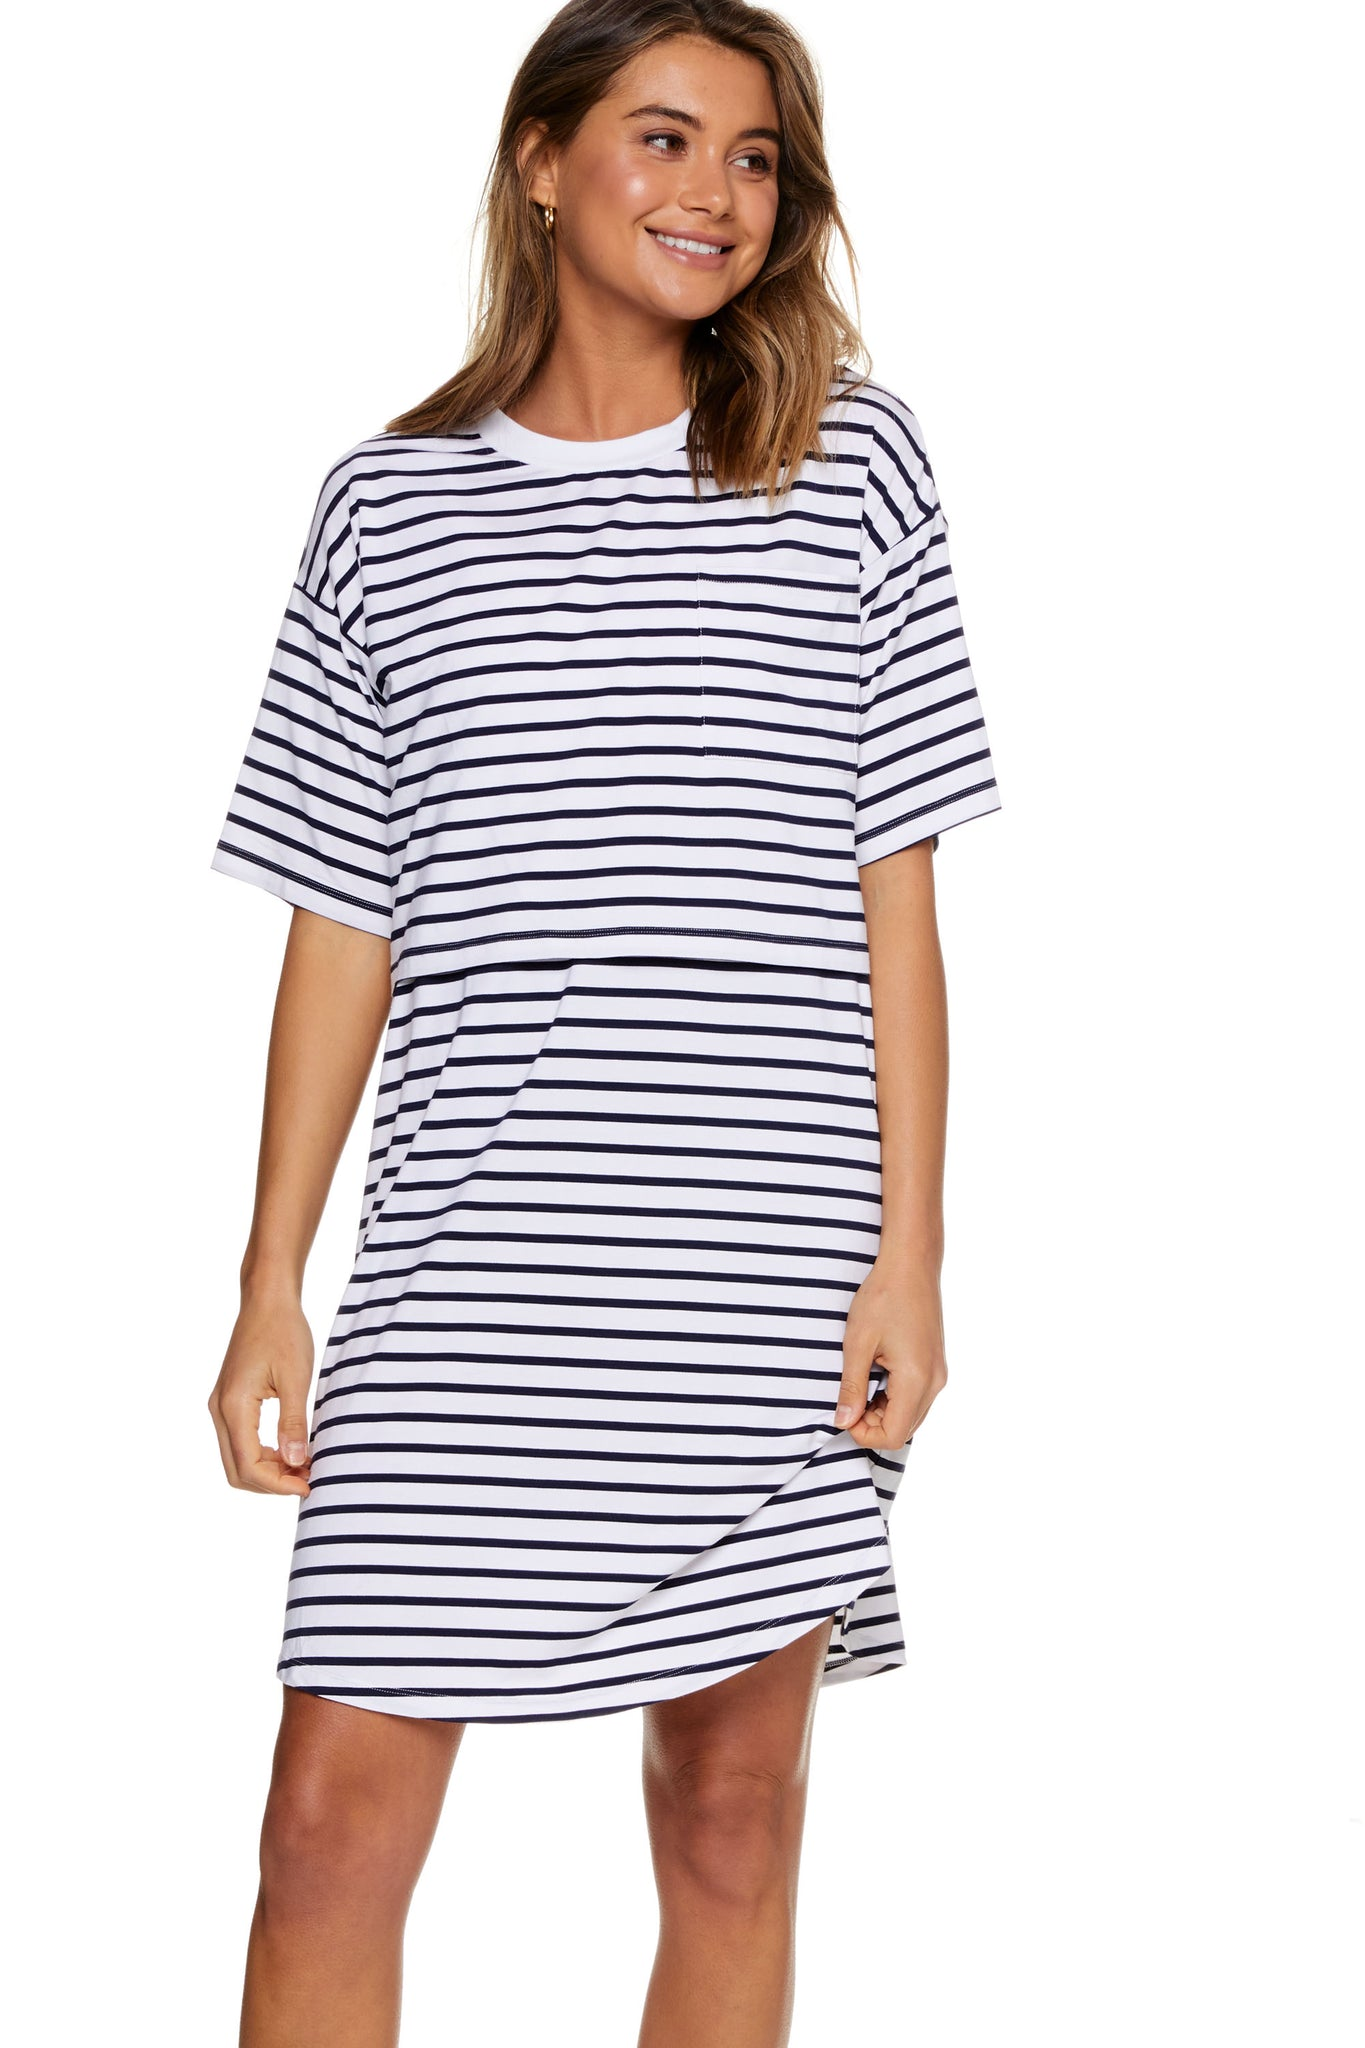 Stripe Maternity and Nursing Pajama Dress Image 5